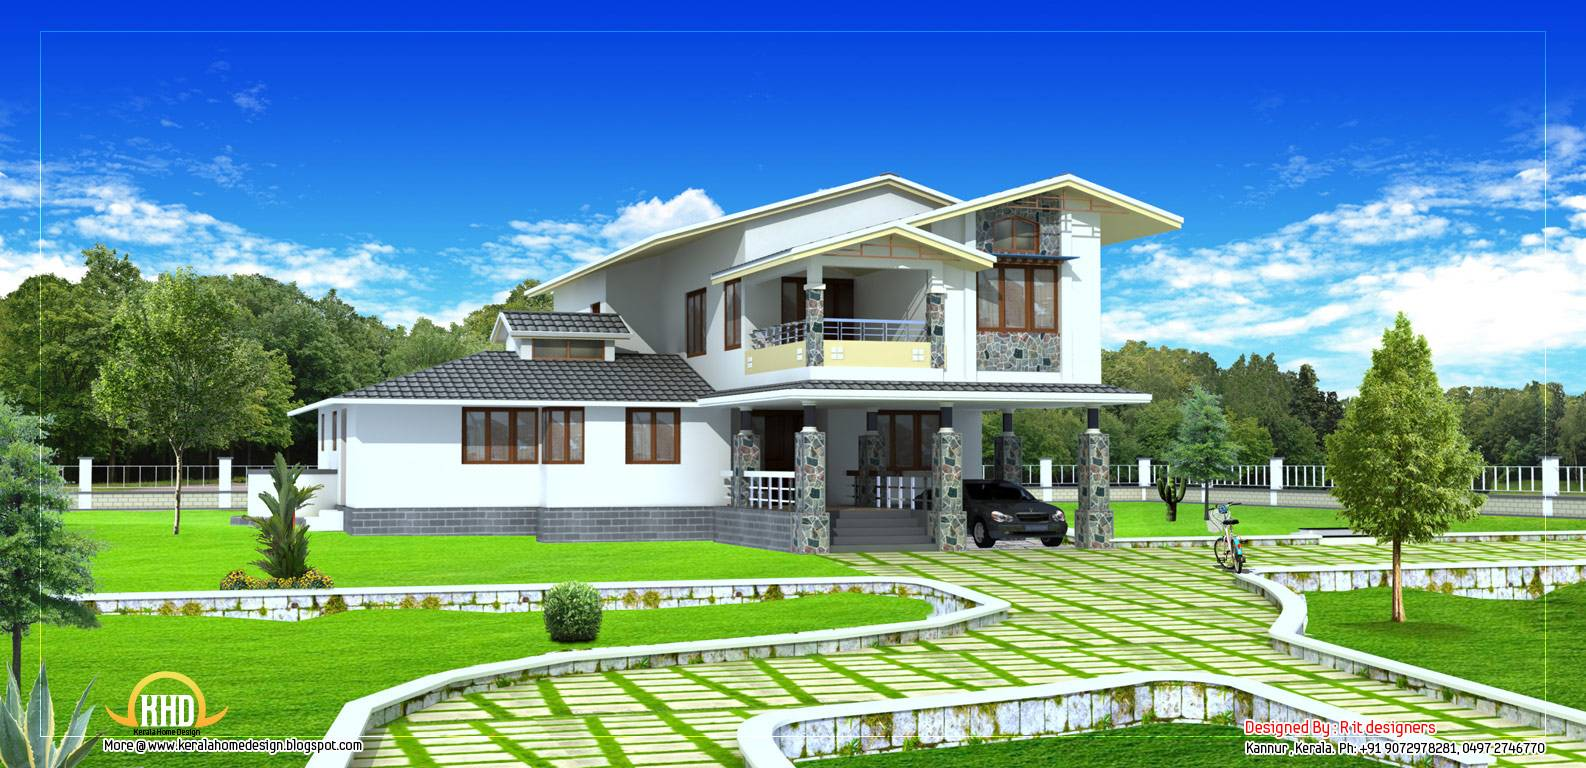 double story house plan kerala home design floor plans story house plan home  appliance. 100     Bedroom House Plans Story Modern Storey Roofdeck Youtube